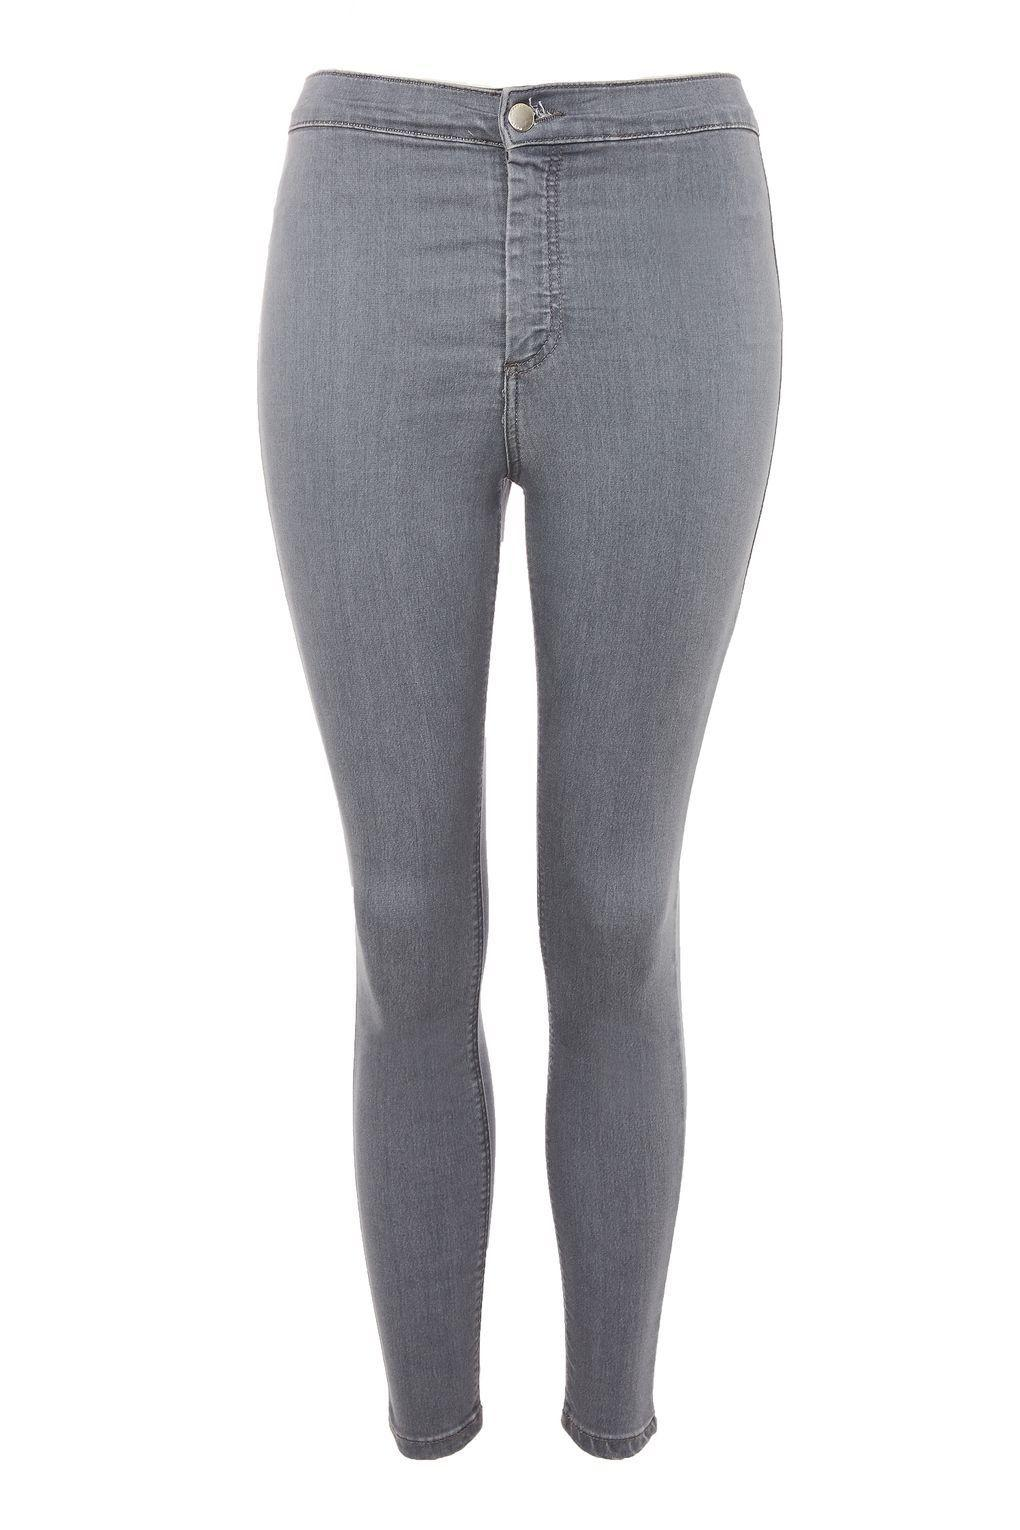 TOPSHOP Denim Petite Grey Joni Jeans in Grey